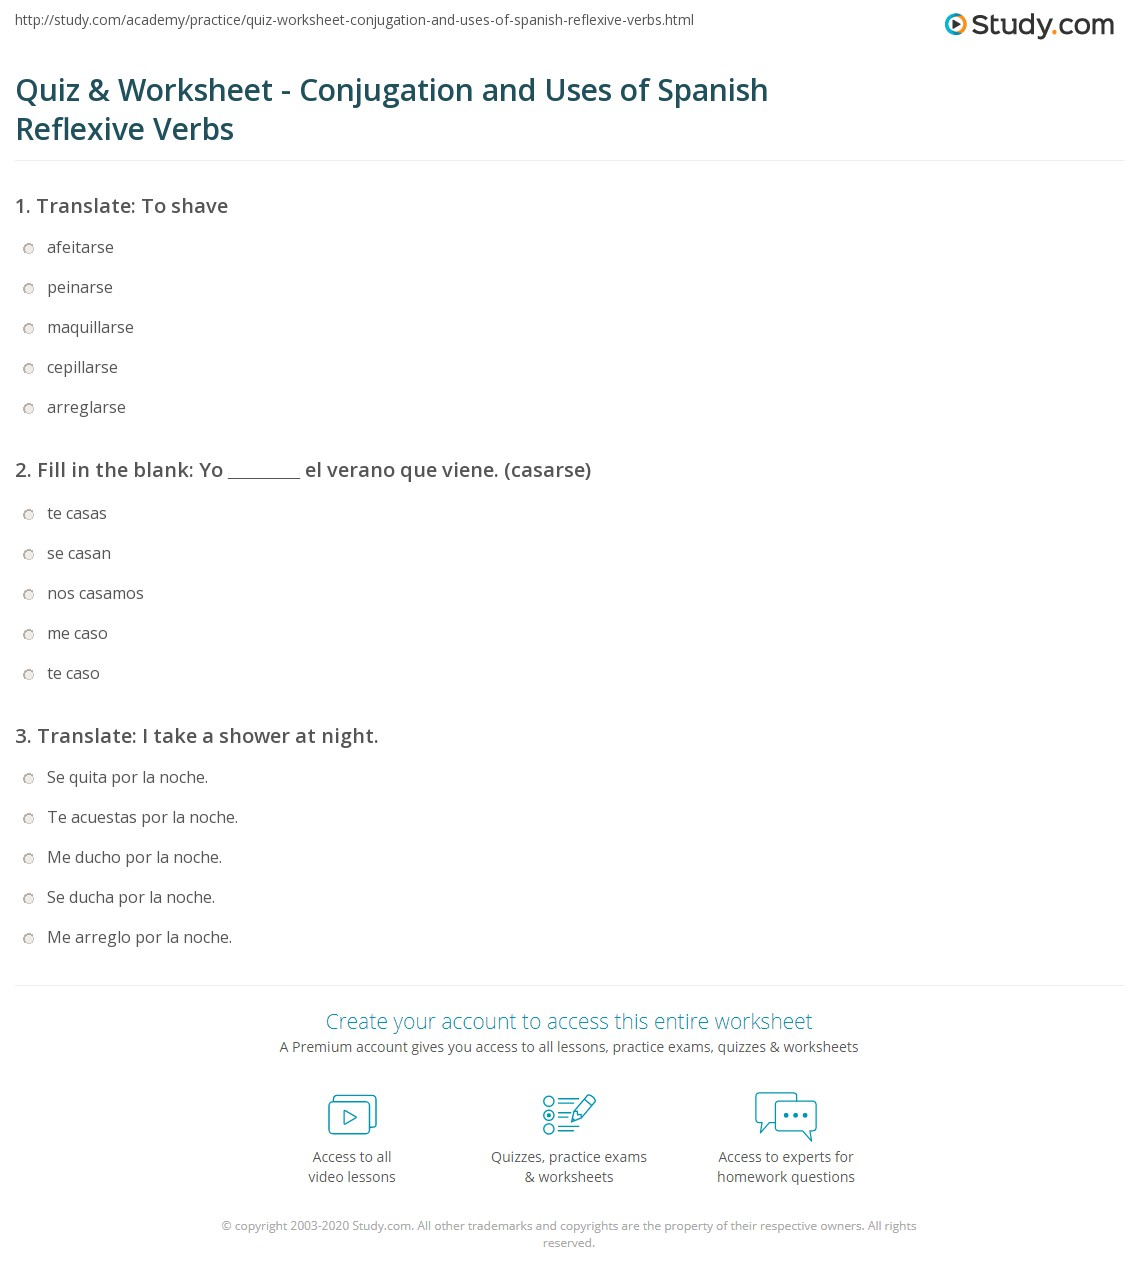 quiz worksheet conjugation and uses of spanish reflexive verbs. Black Bedroom Furniture Sets. Home Design Ideas